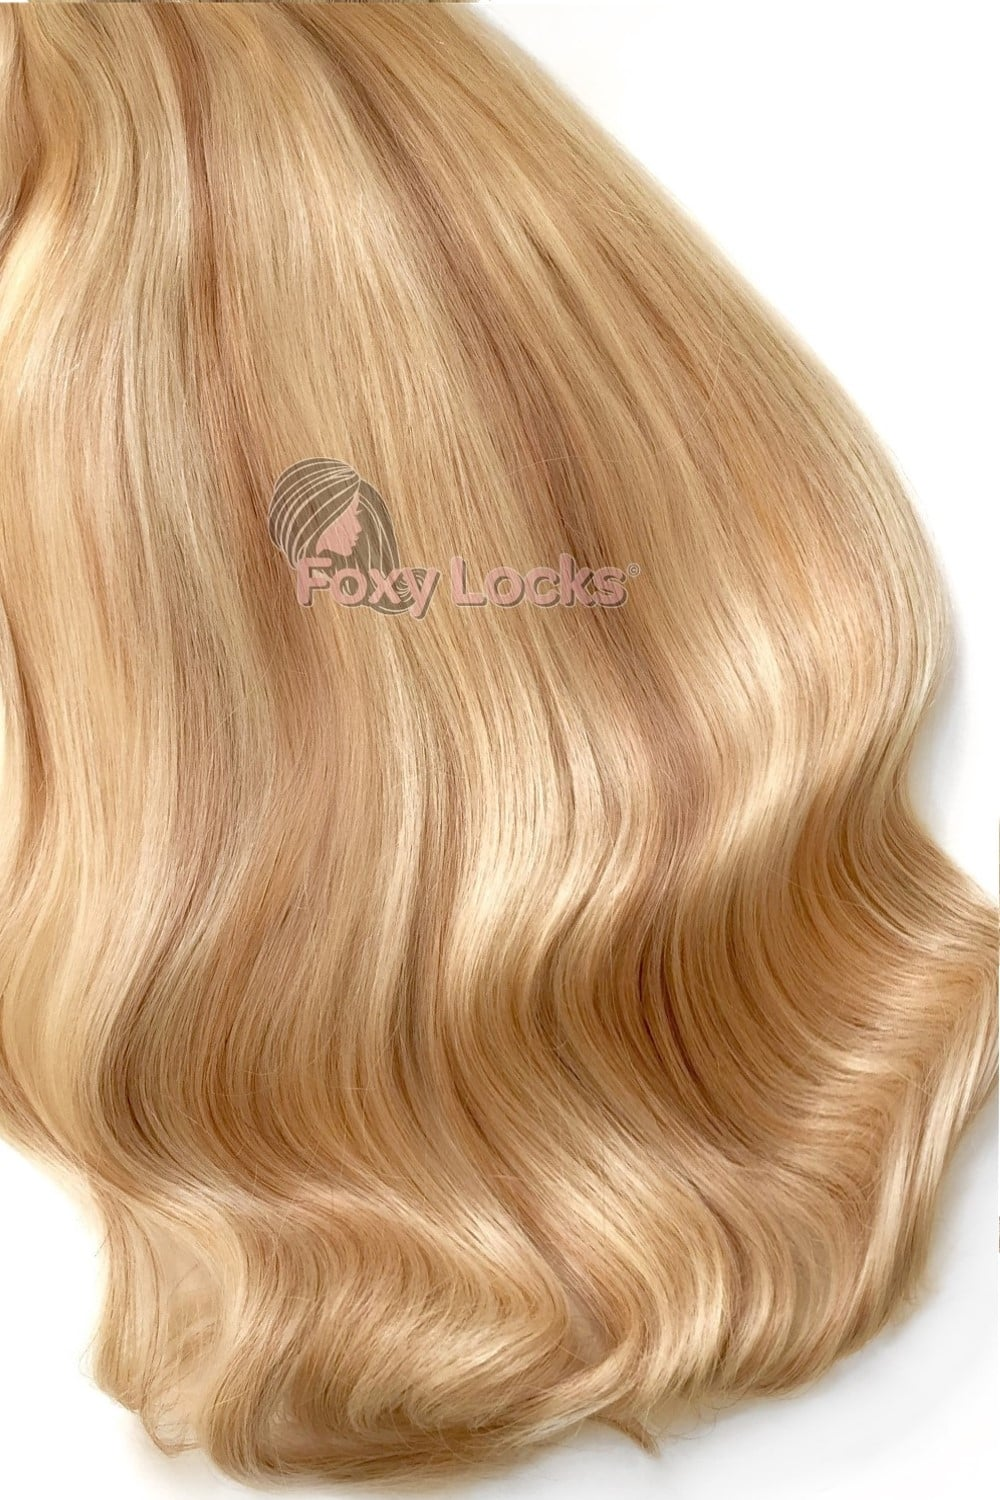 Sandy Blonde Highlights Superior 20 Clip In Human Hair Extensions